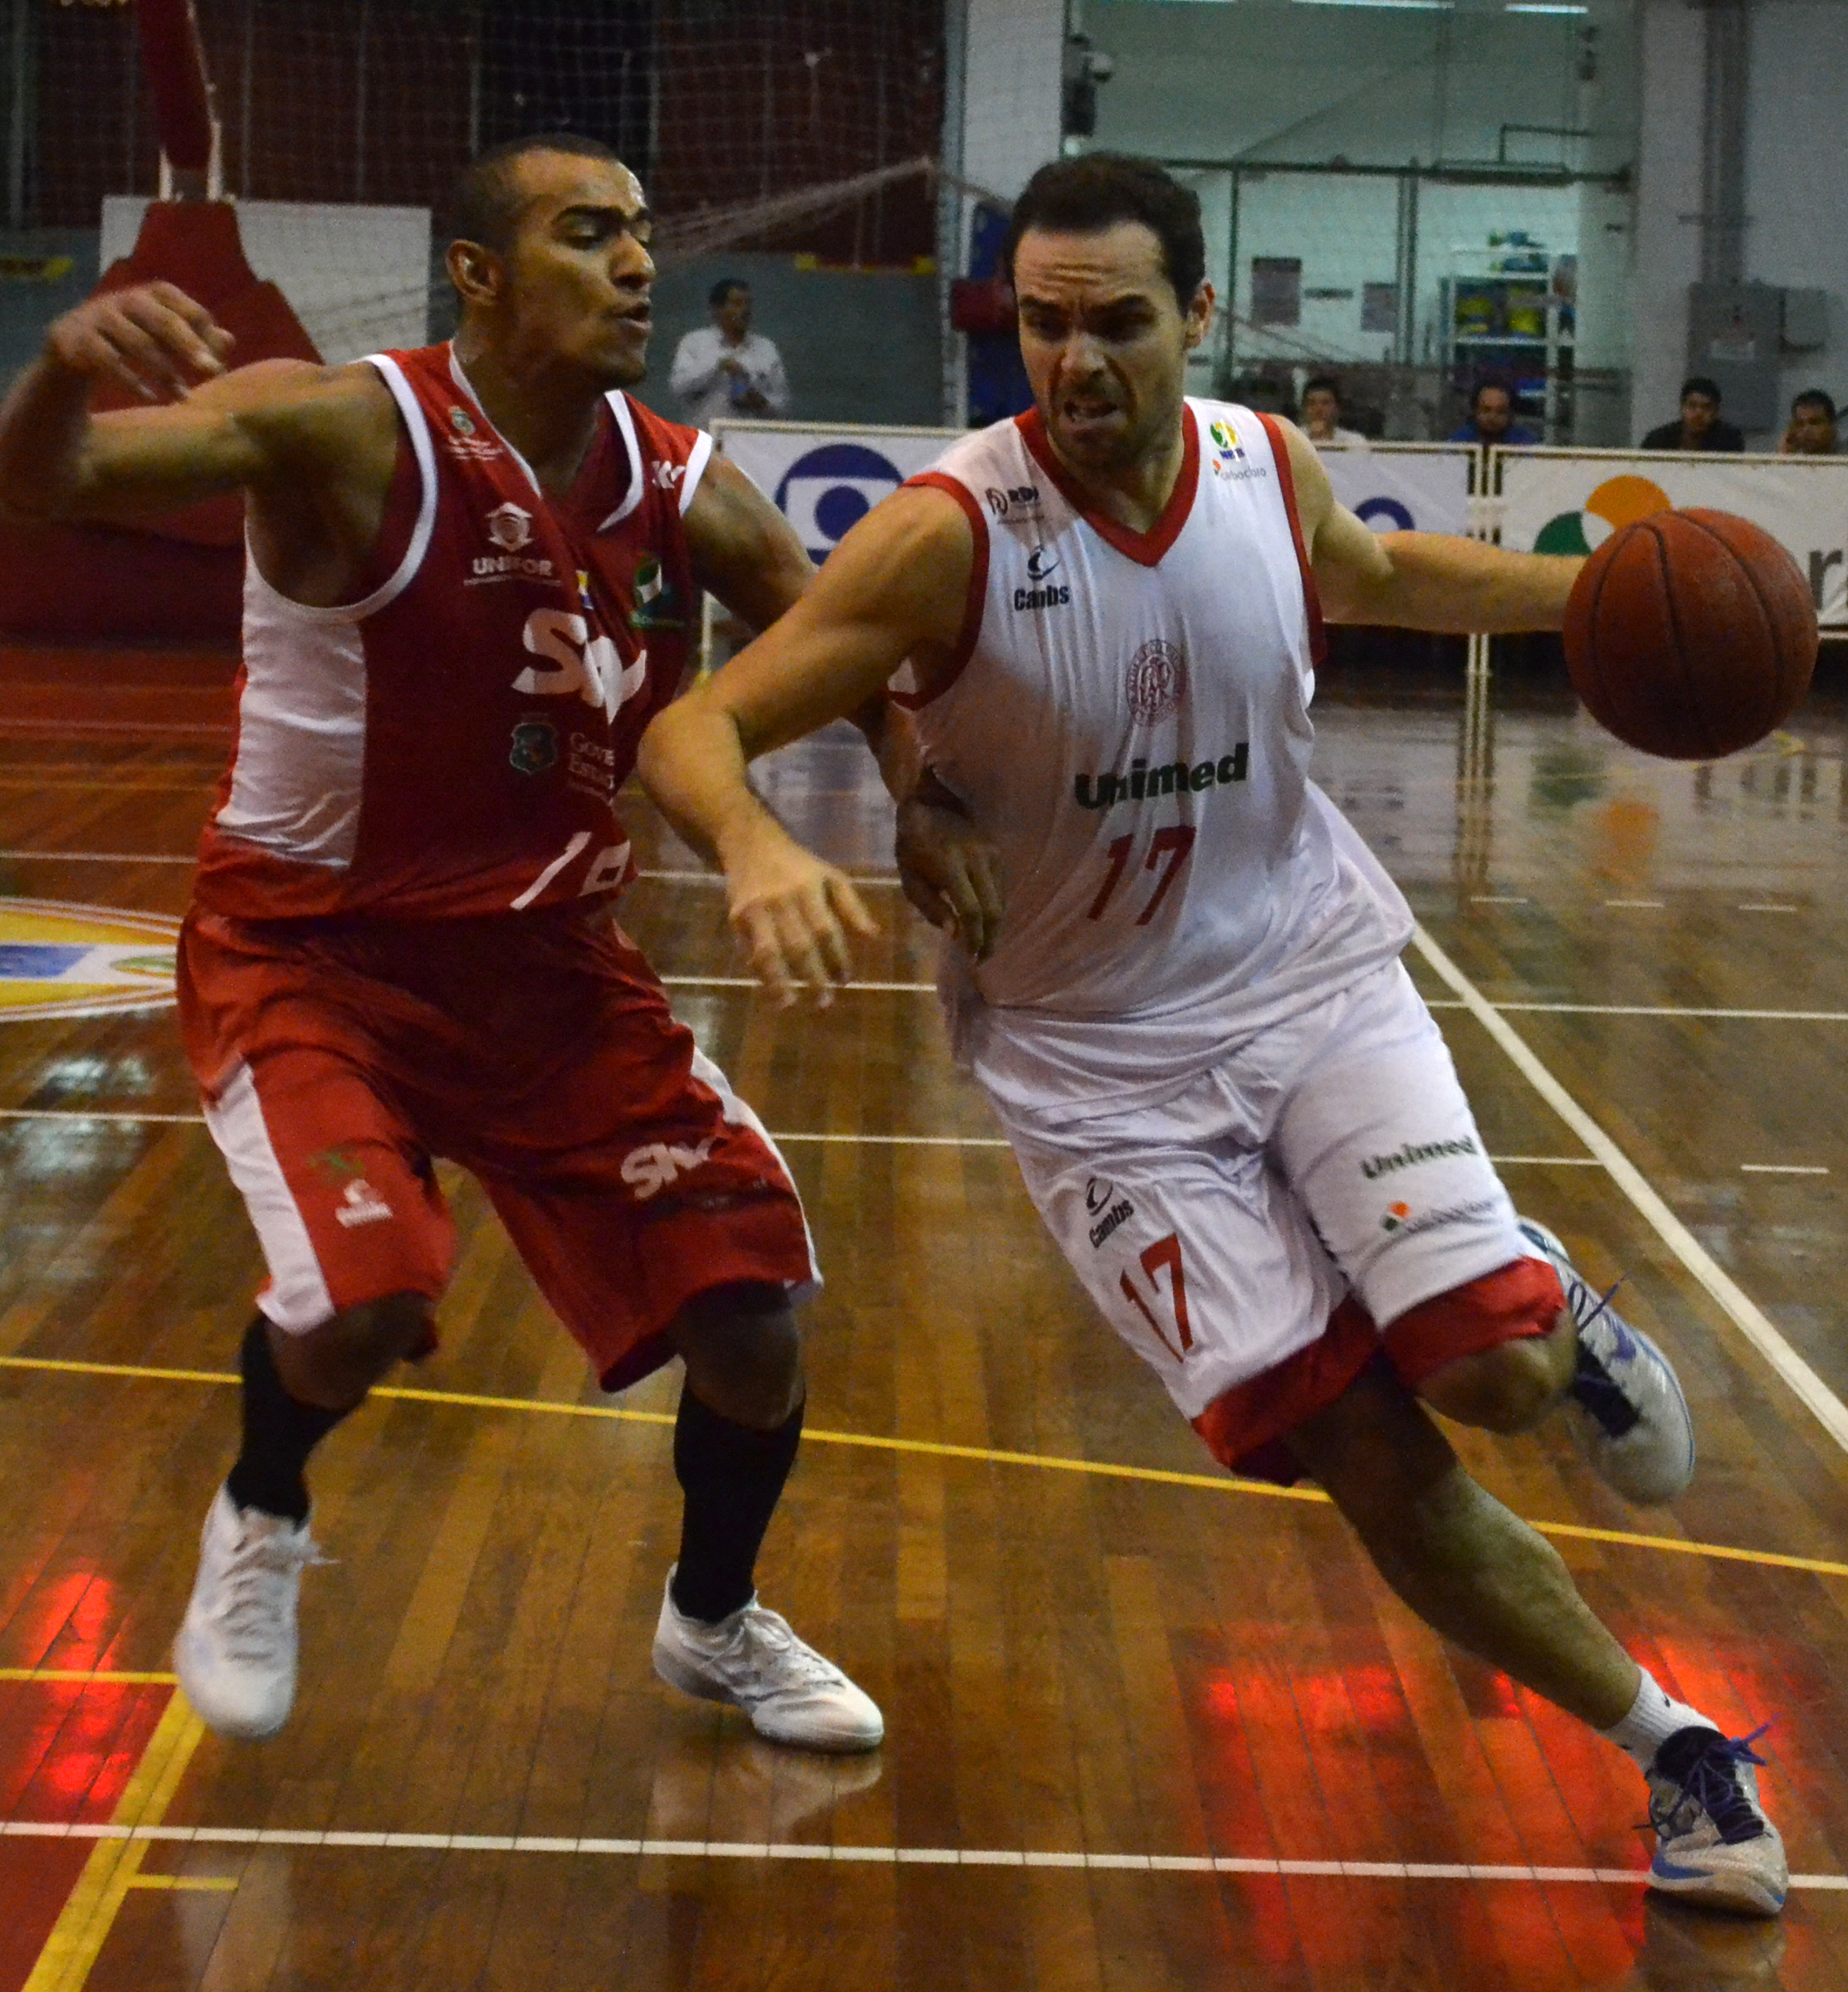 Mantegunha, do Paulistano, e Jimmy, do Basquete Cearense